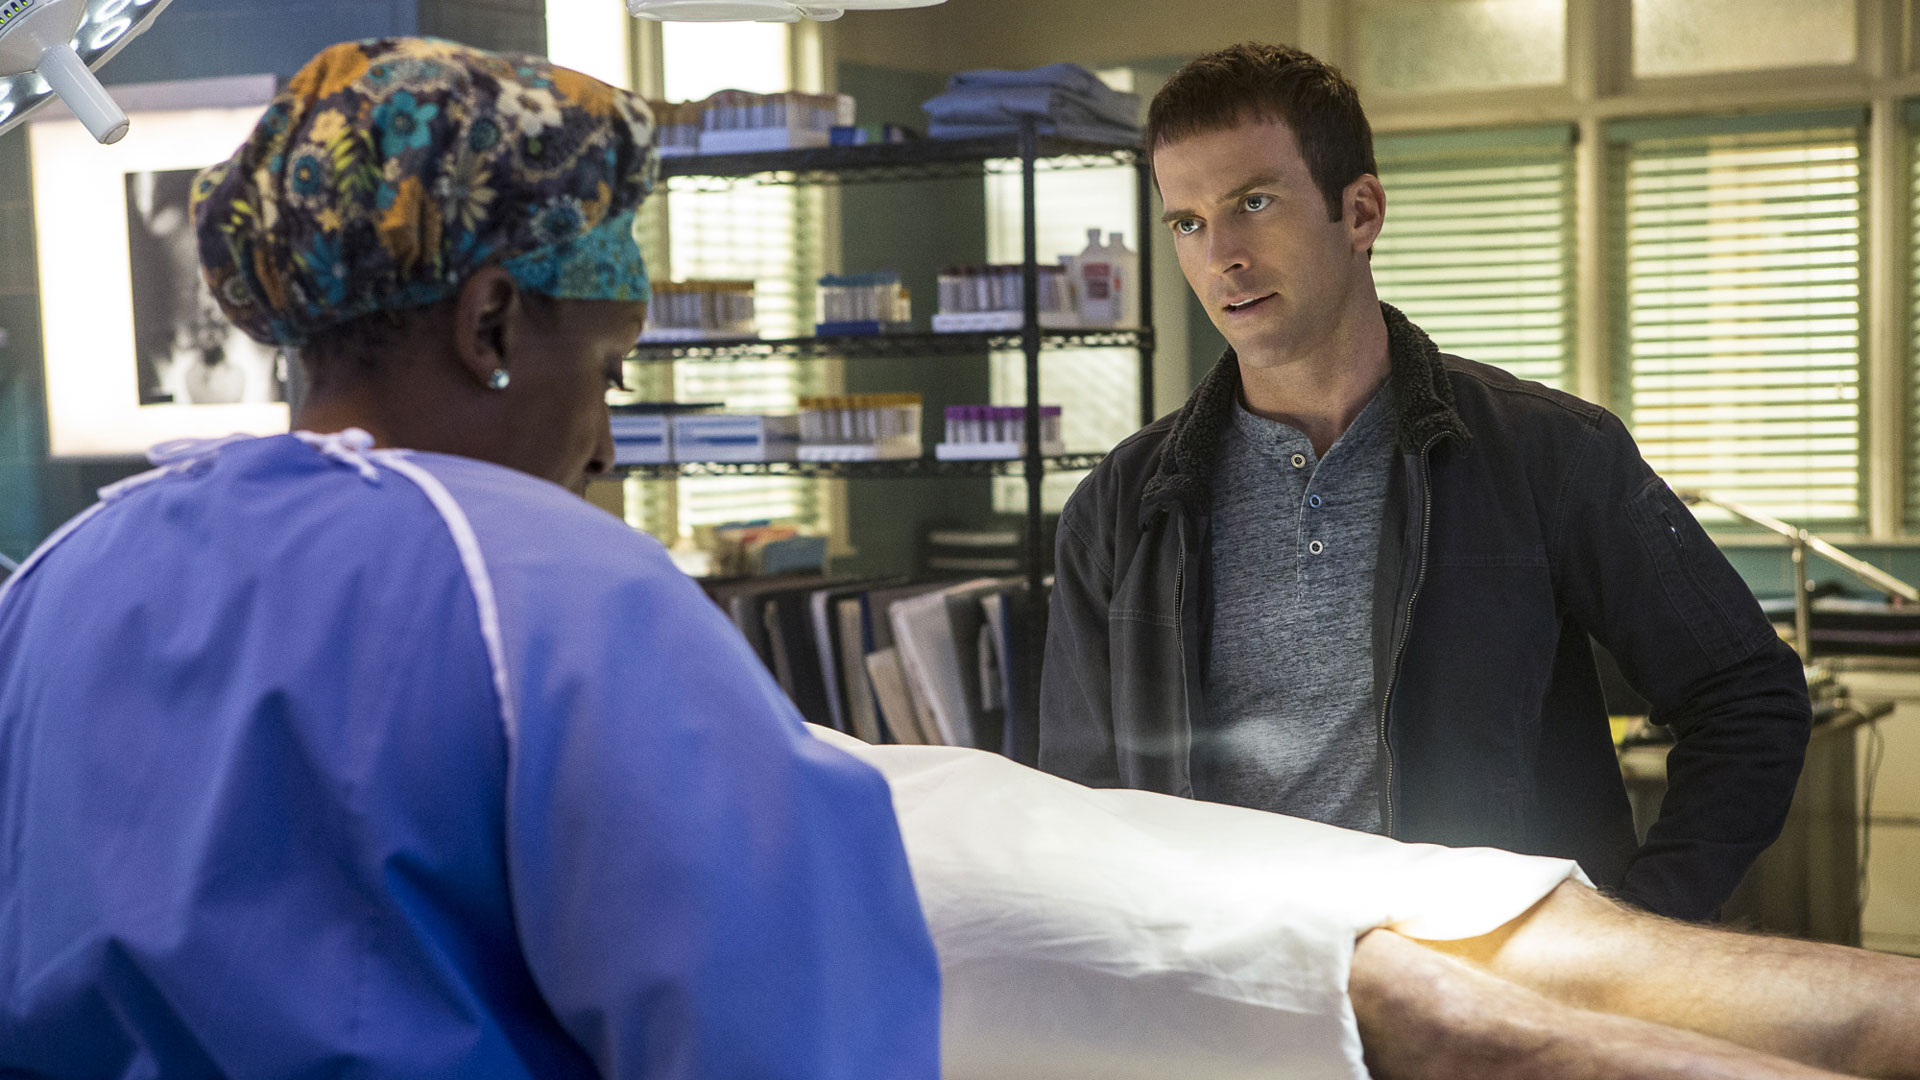 CCH Pounder as Dr. Loretta Wade and Christopher LaSalle as Lucas Black